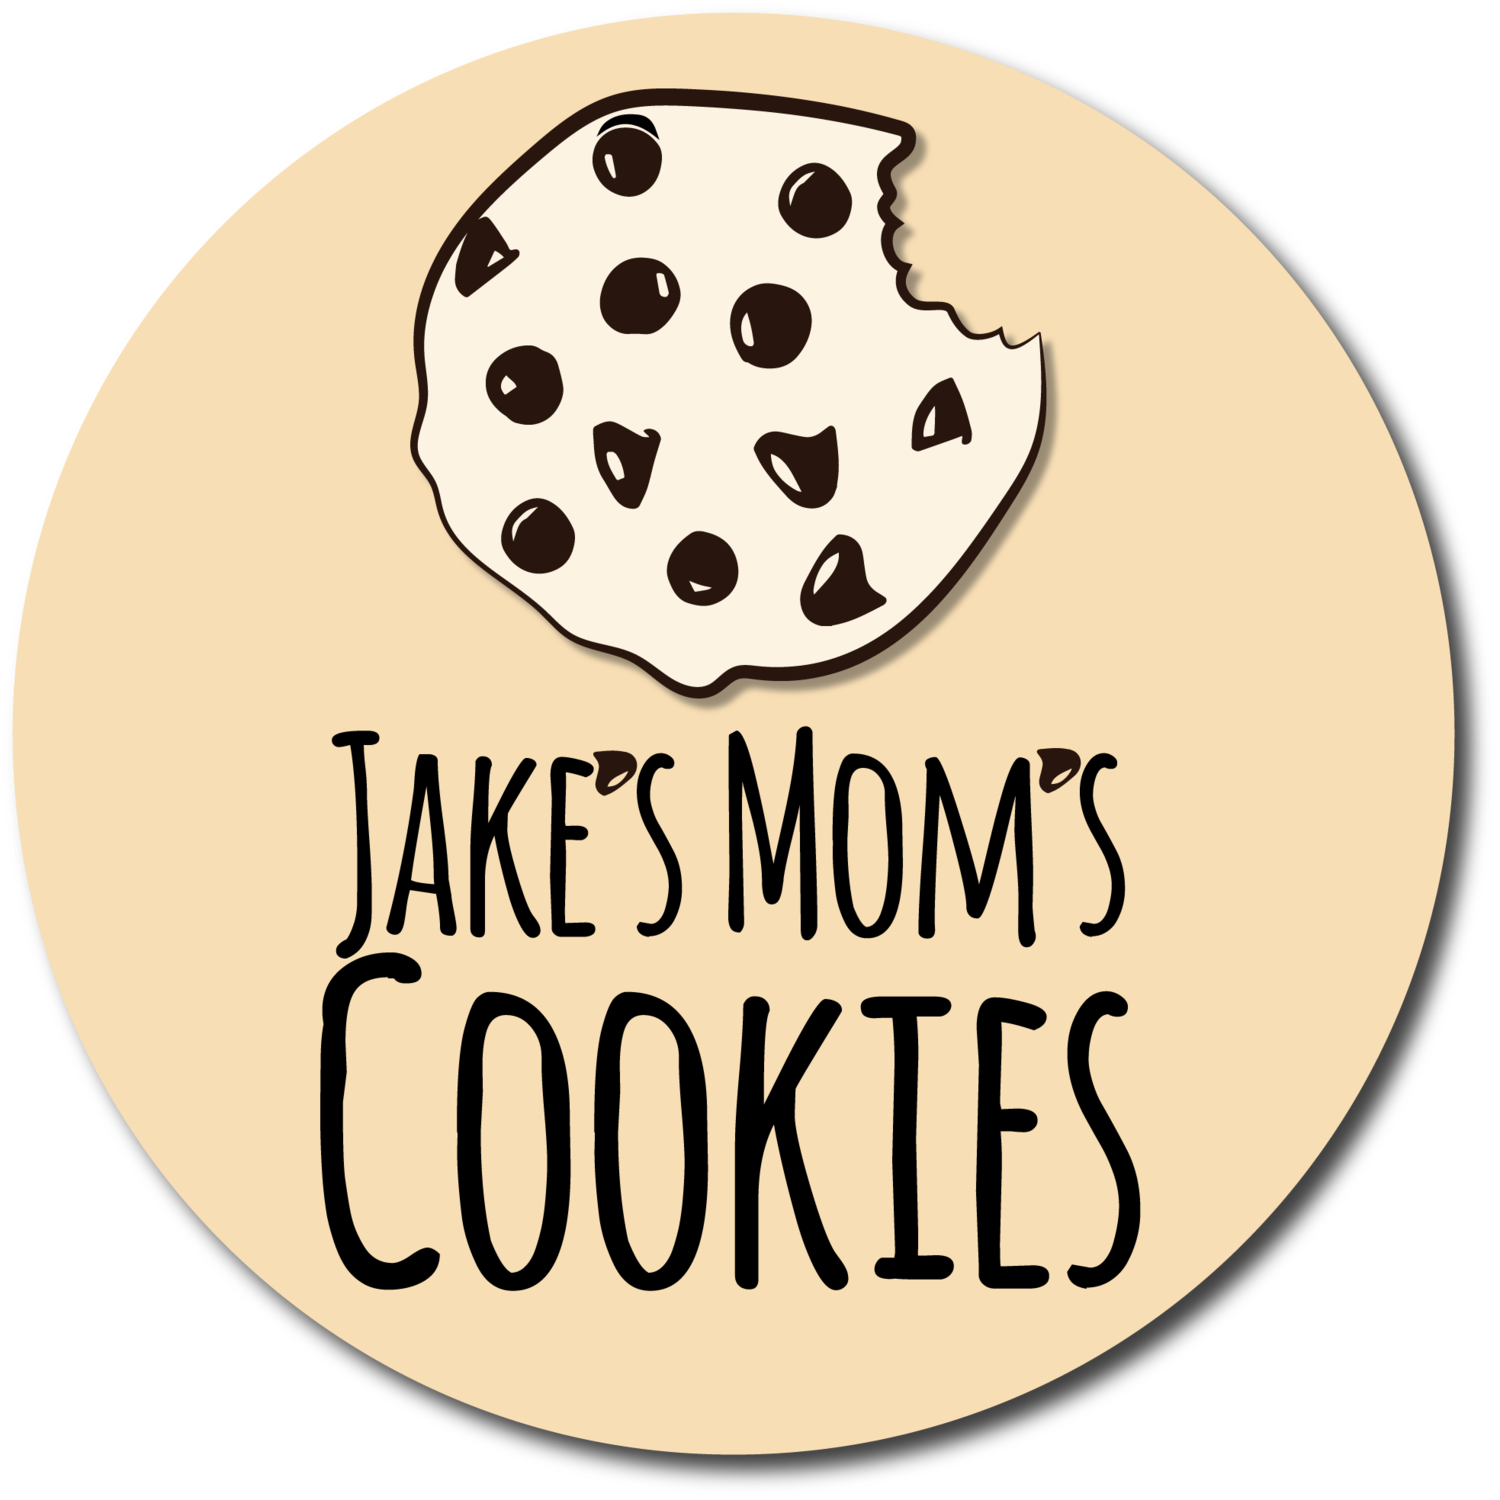 Jake's Mom's Cookies